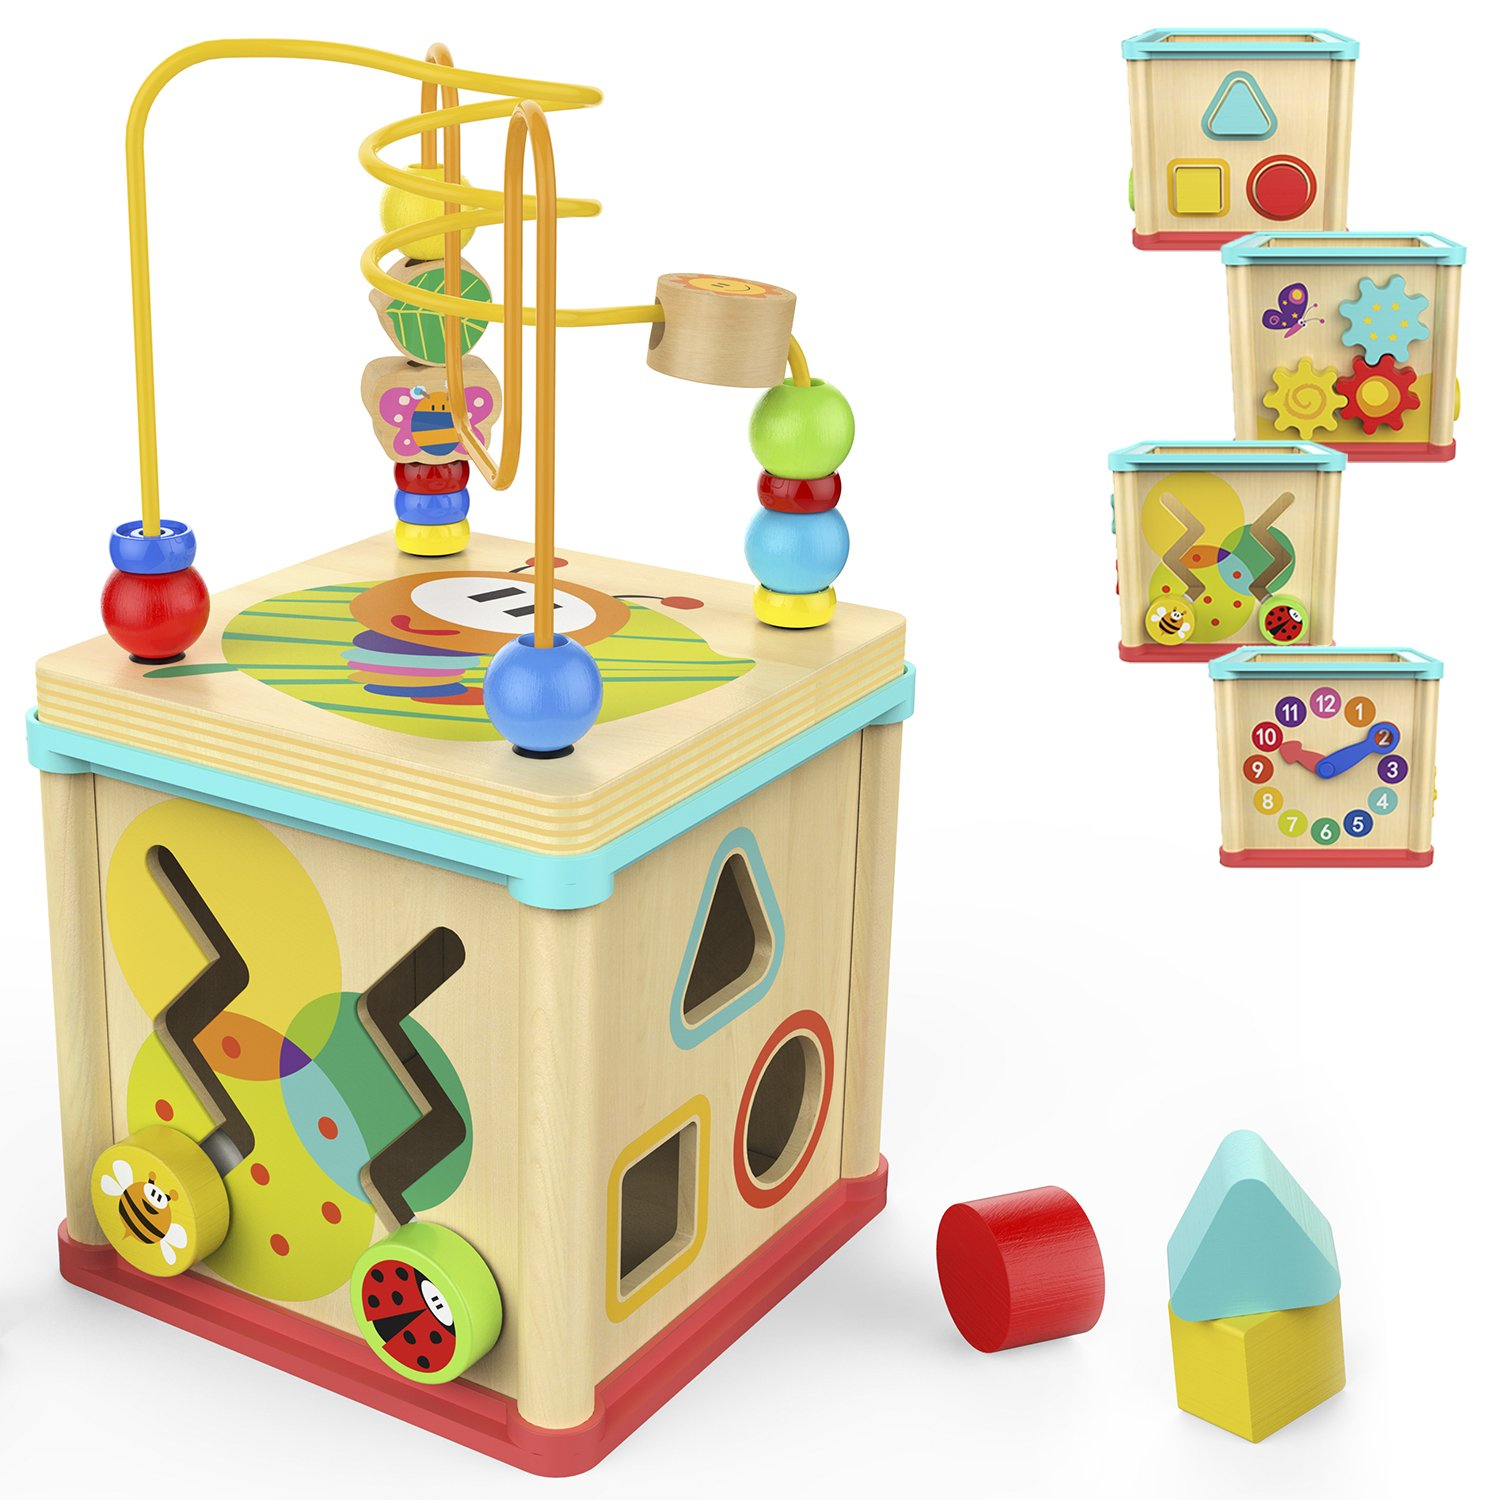 TOP BRIGHT Activity Cube Toys Baby Educational Wooden Bead Maze Shape Sorter 1 year old Boy Girl Toddlers Gift Small Size